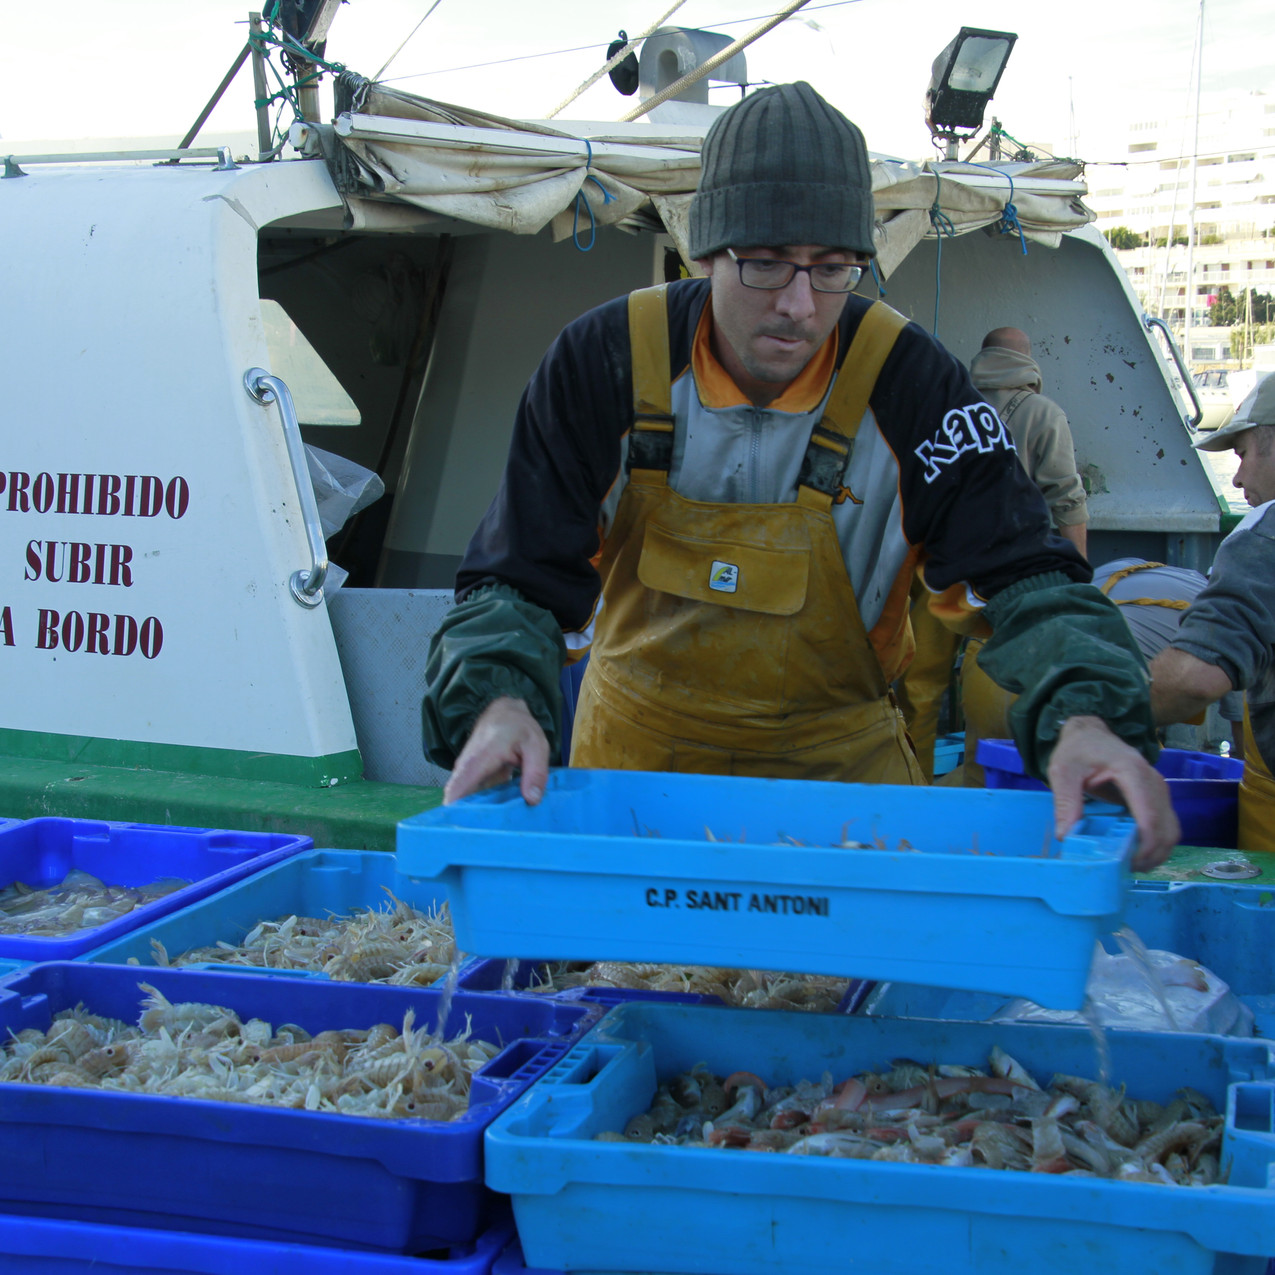 Unloading the catch